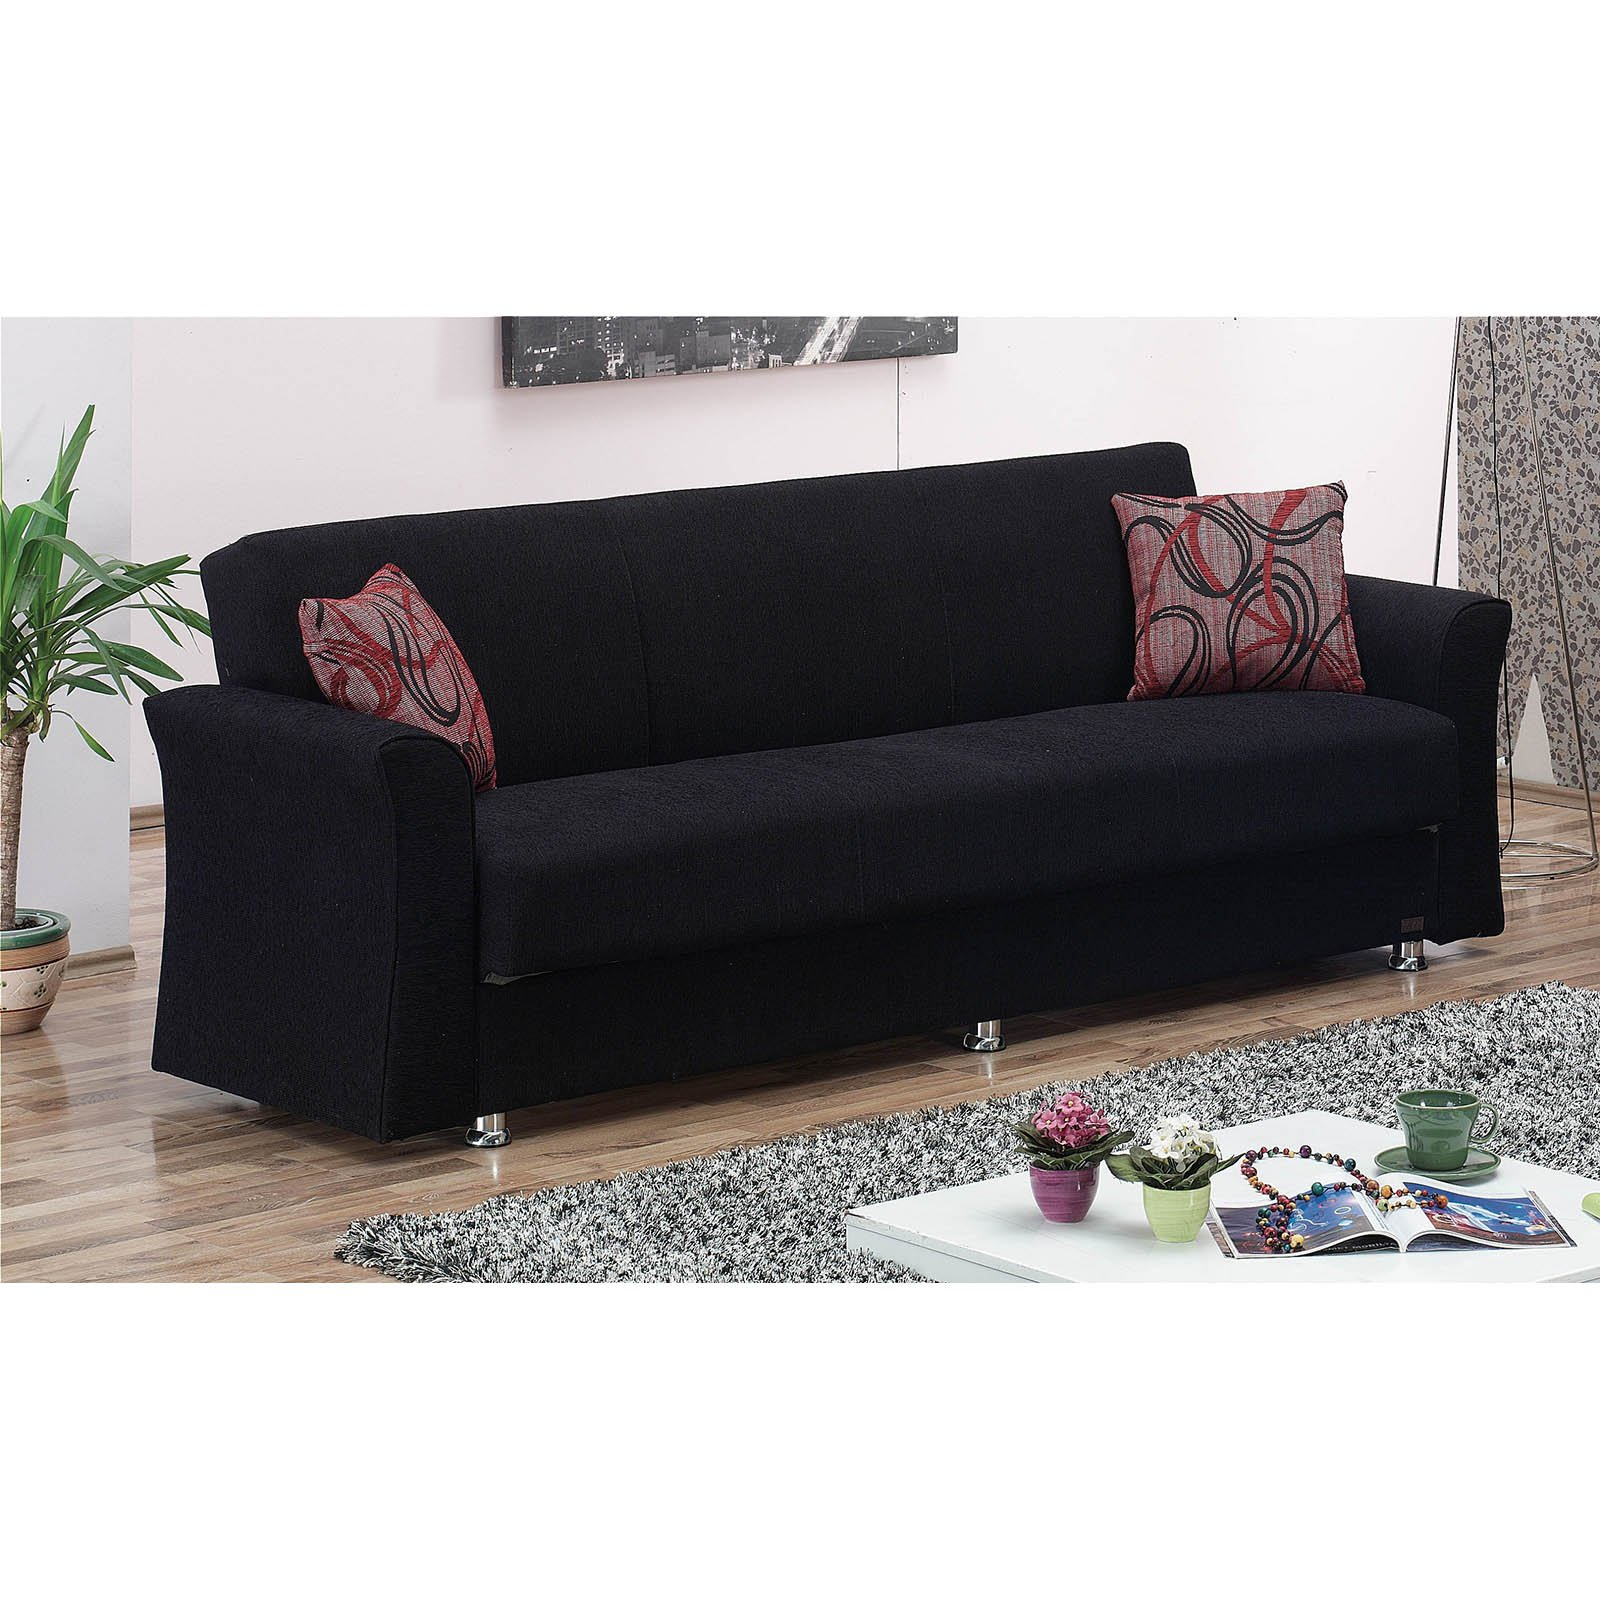 Walmart Usa Sofas Empire Furniture Usa Utah Convertible Sofa - Walmart.com